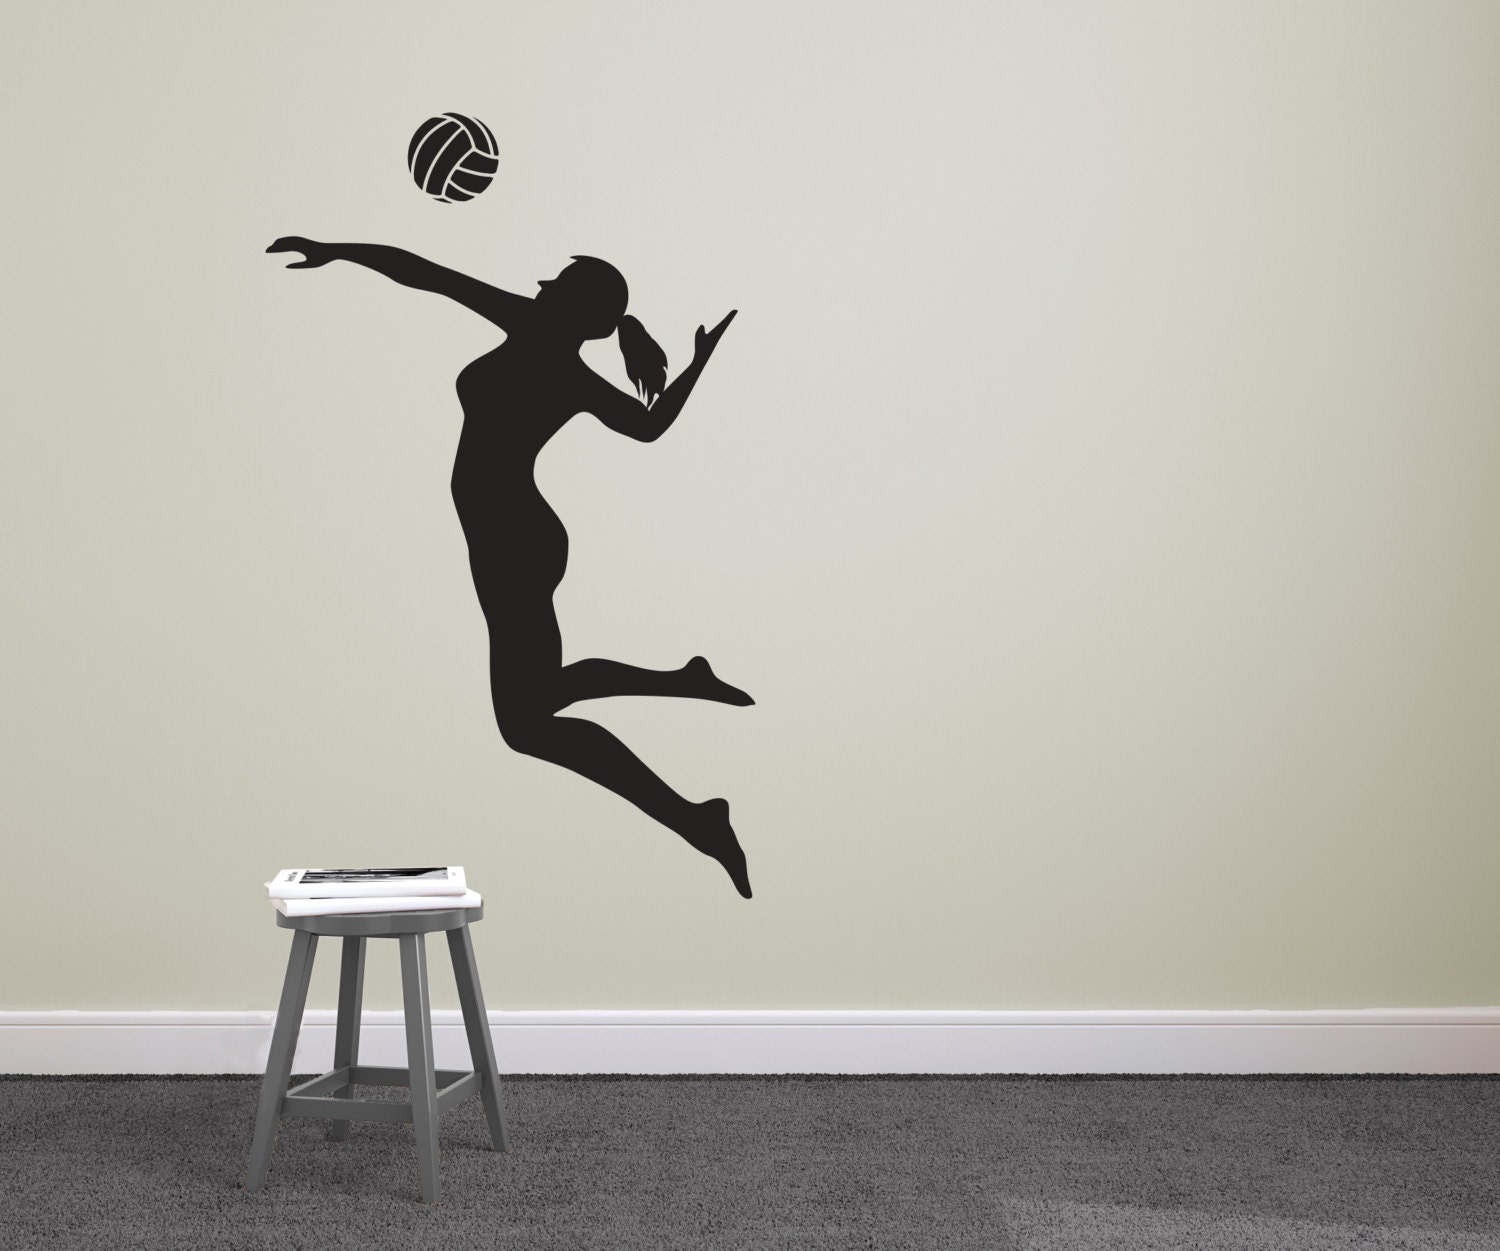 volleyball player spiking silhouette sports wall decal. Black Bedroom Furniture Sets. Home Design Ideas